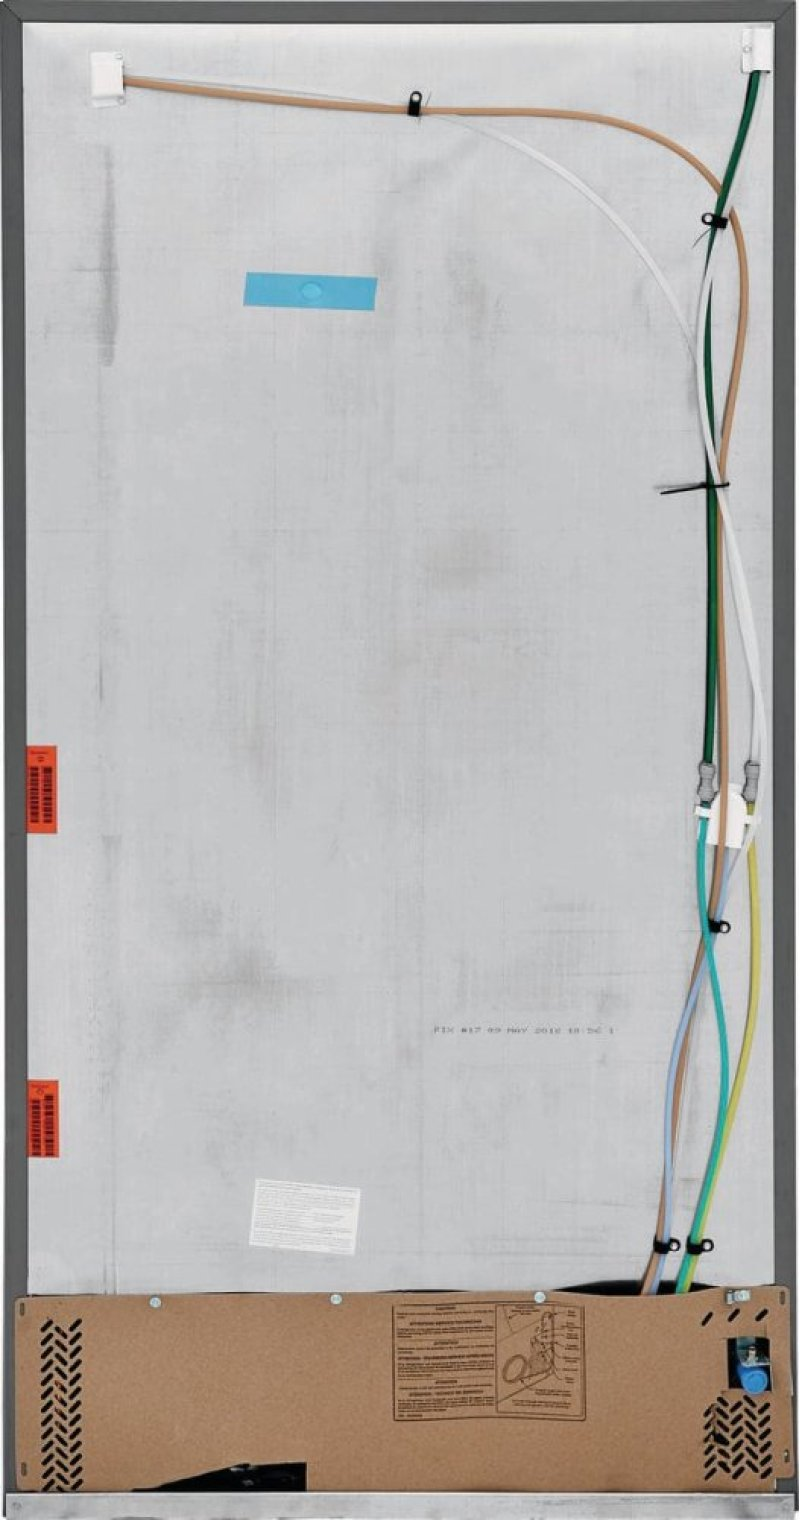 Upright Electrolux Slide Switch Wiring Diagram on